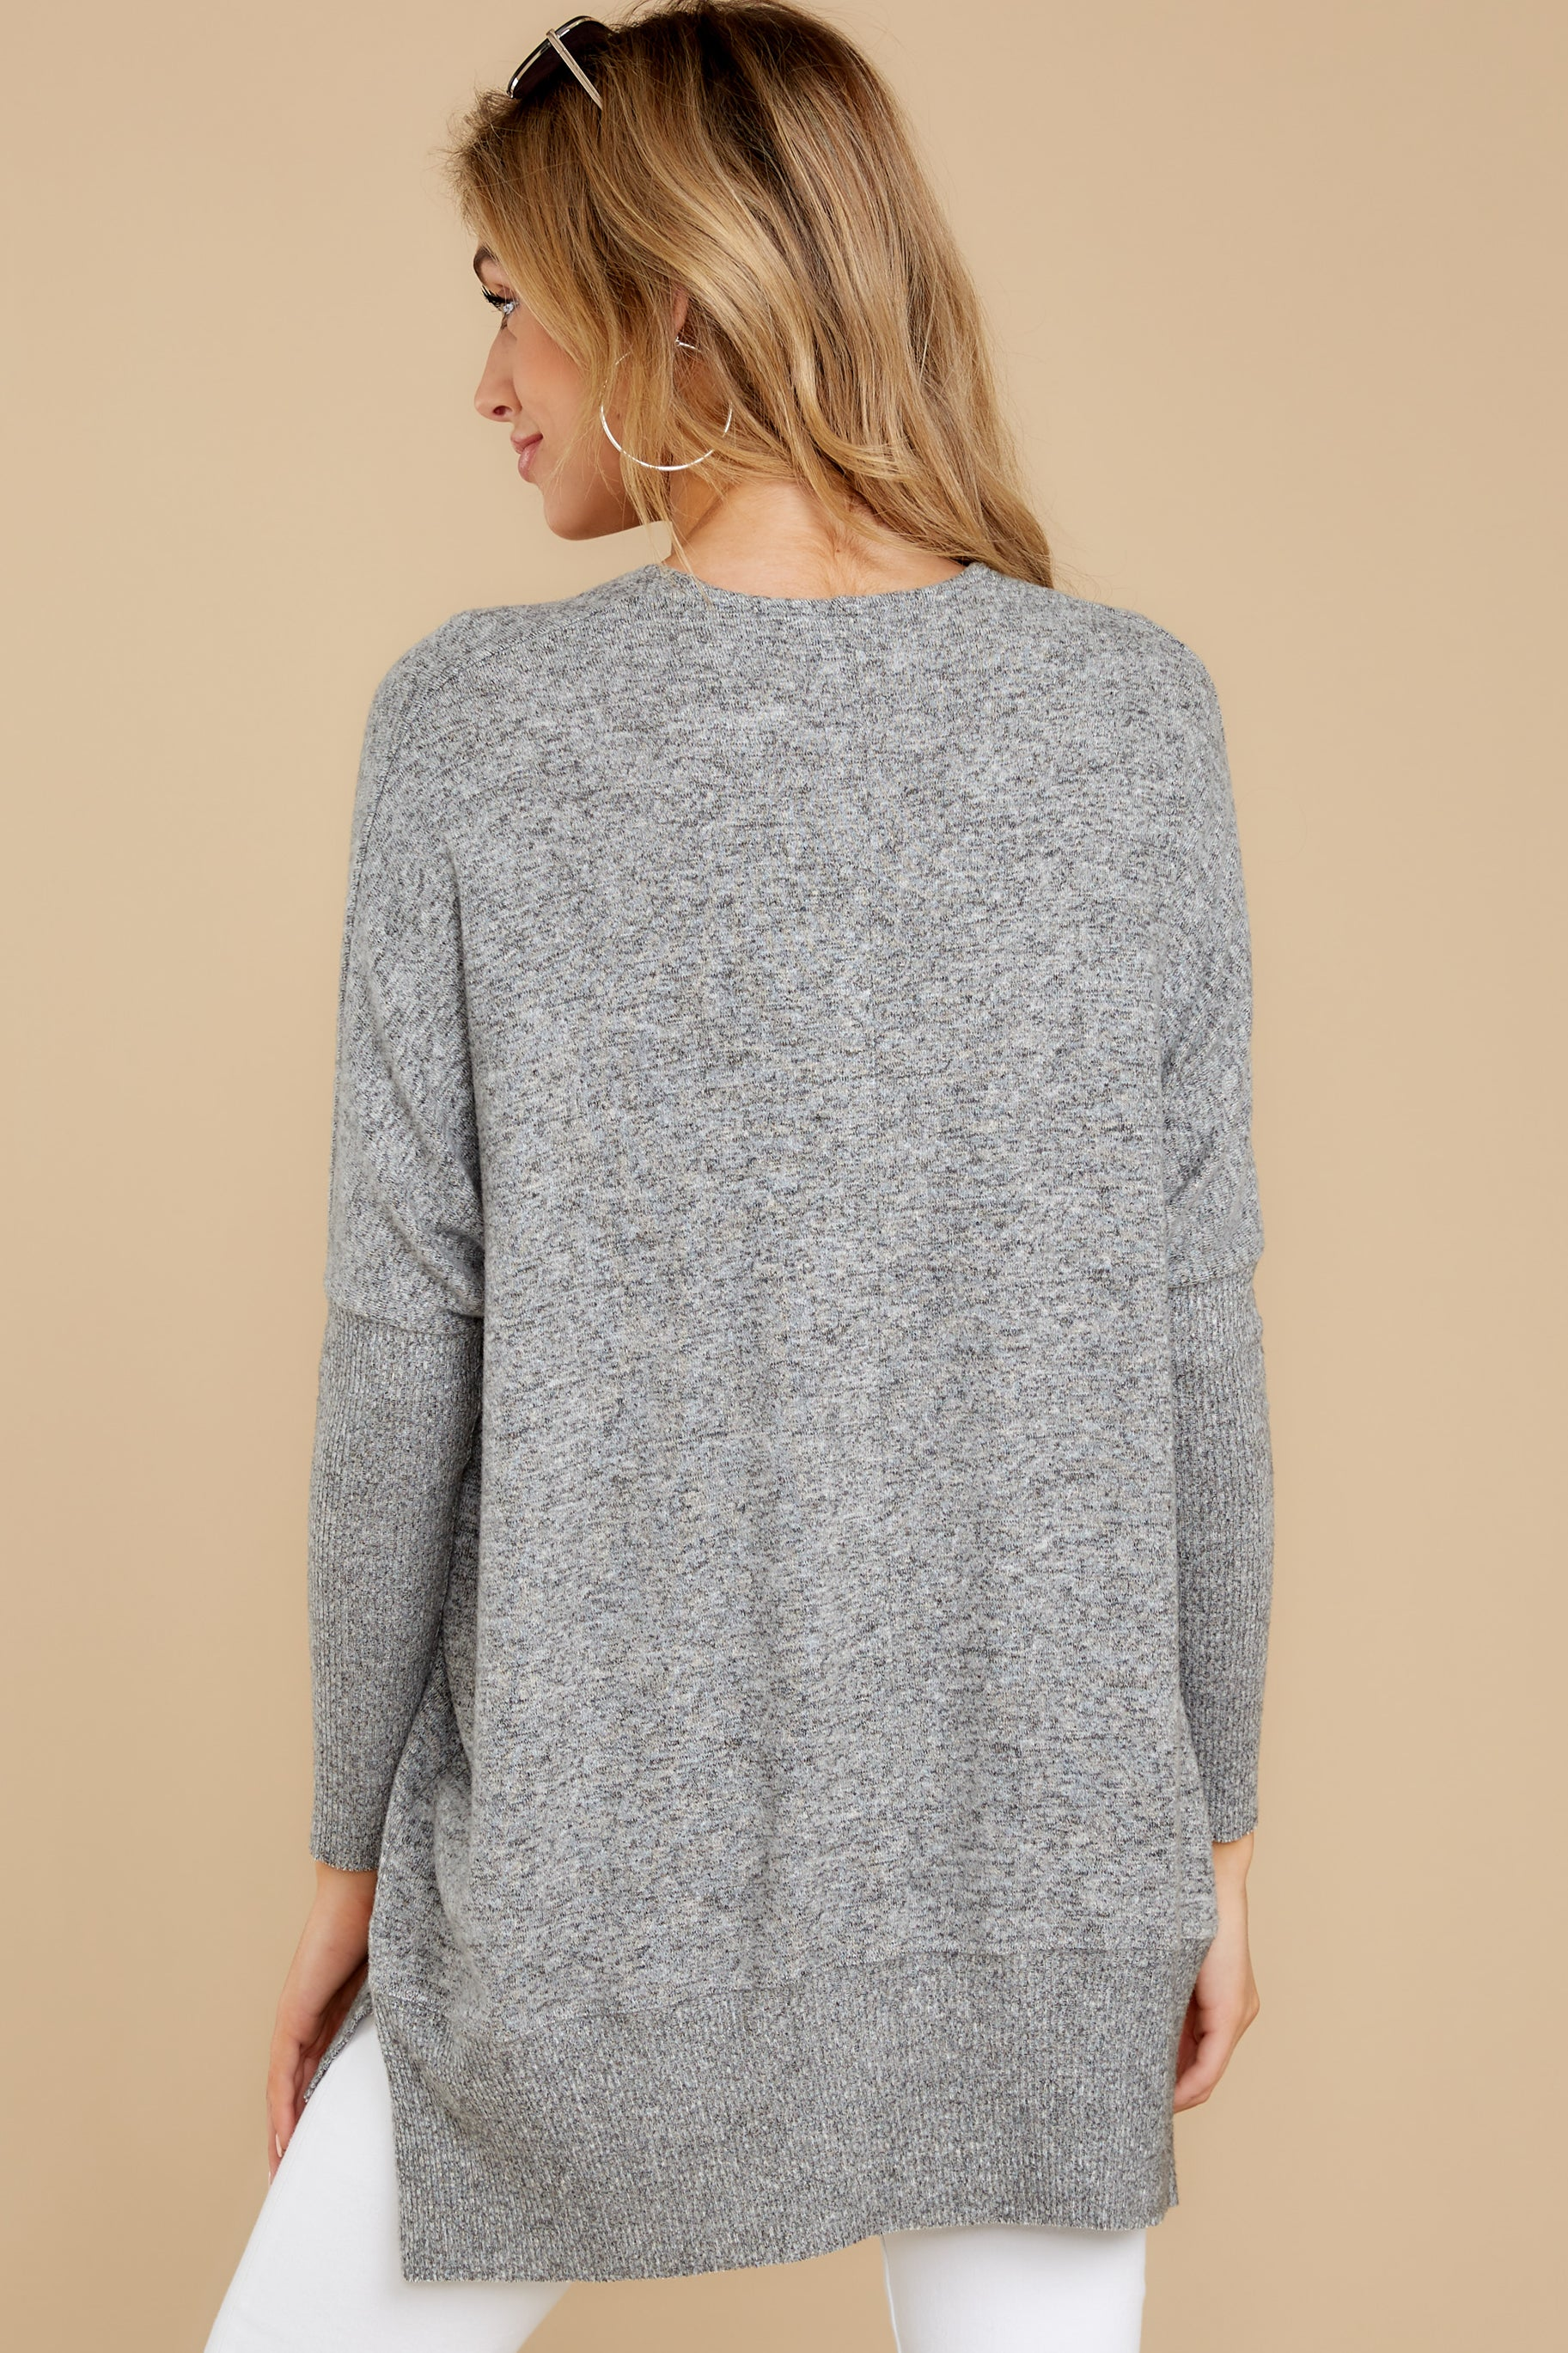 8 Any Which Way Heather Grey Sweater at reddressboutique.com